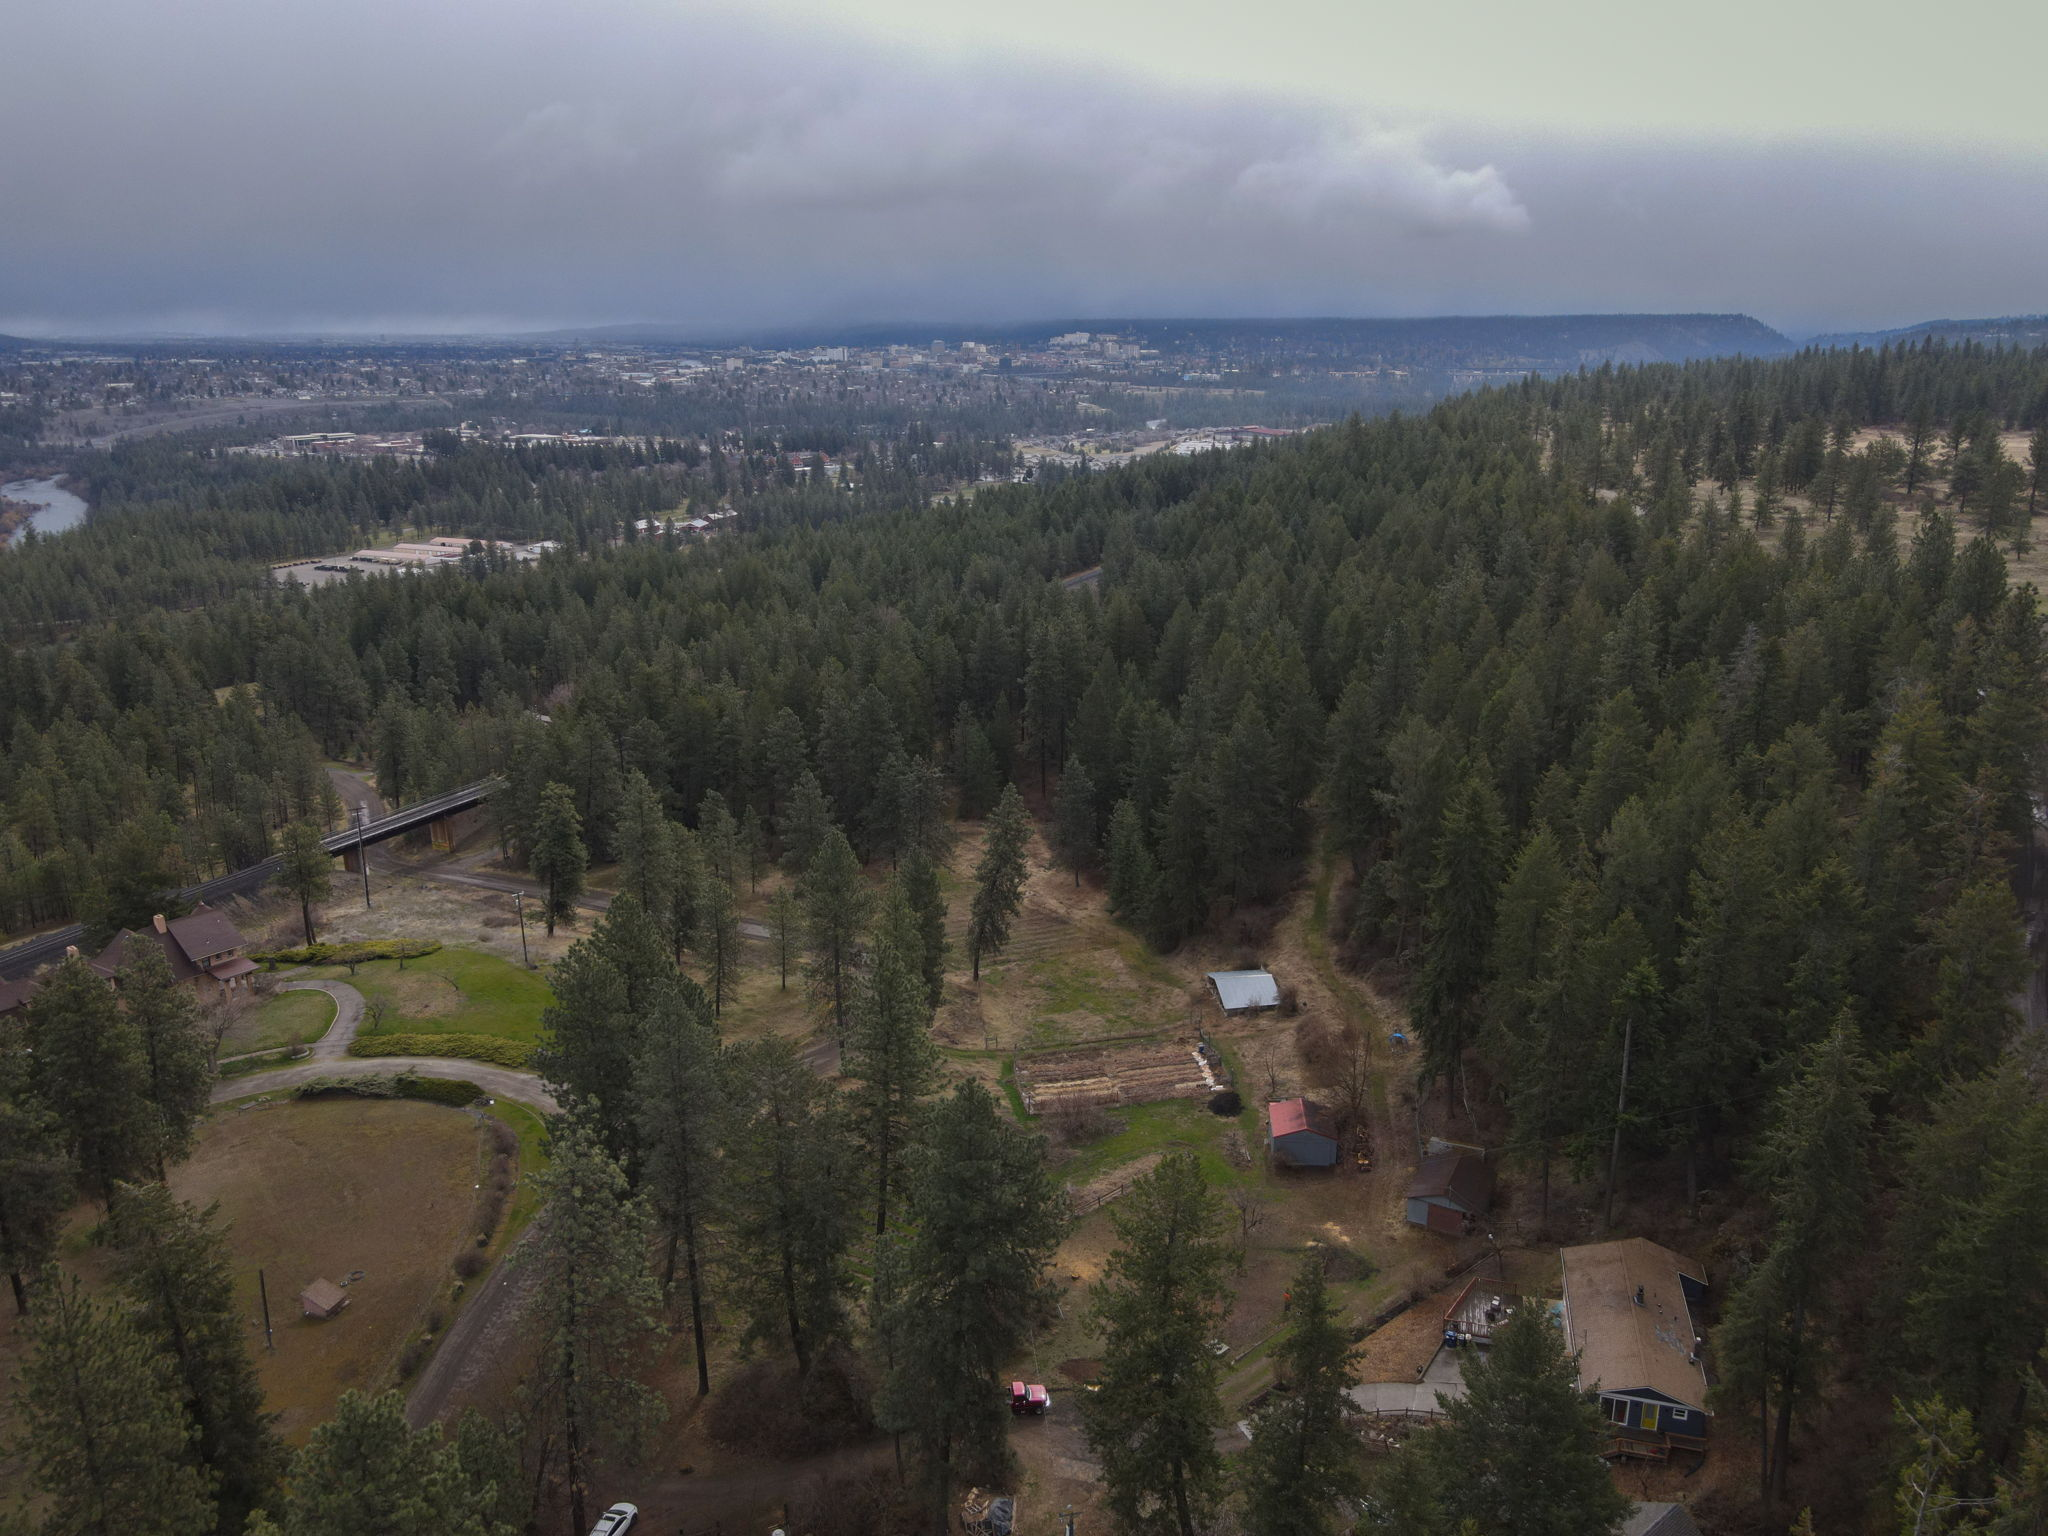 Aerial Views of Property, Outbuildings, and Acreage